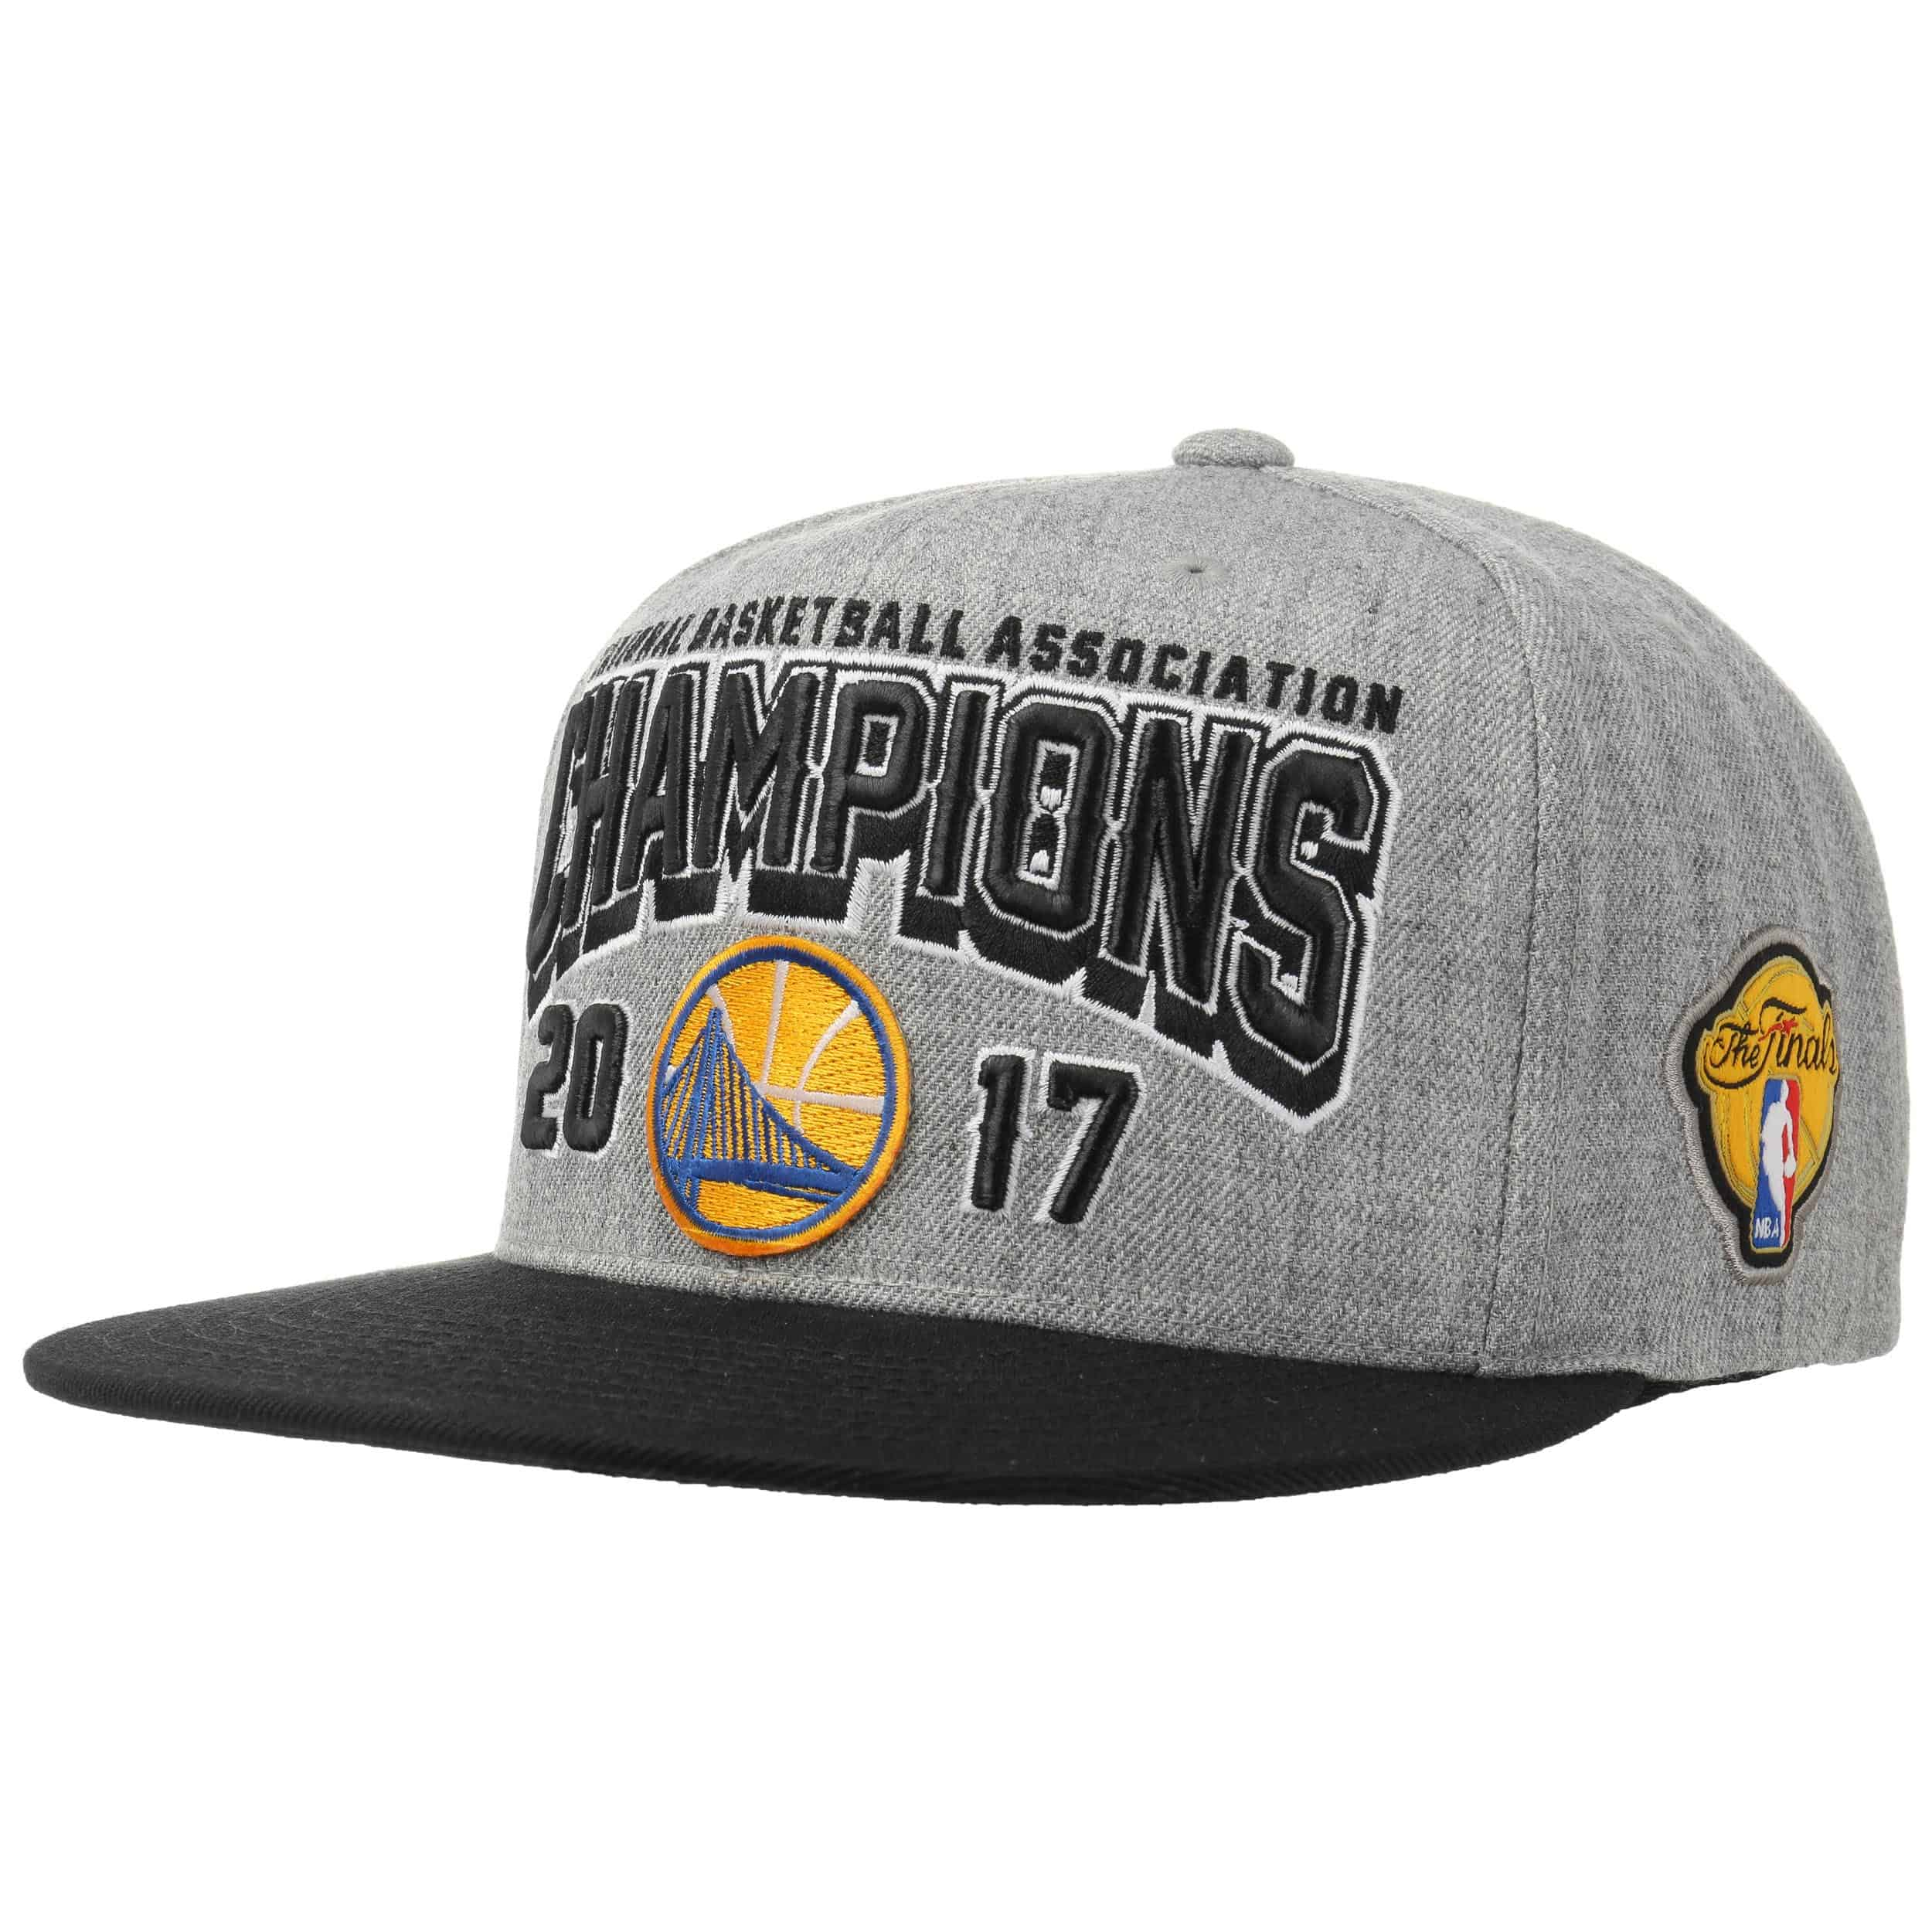 812a55894ad71 Gorra Warriors Champs by Mitchell   Ness - Gorras - sombreroshop.es